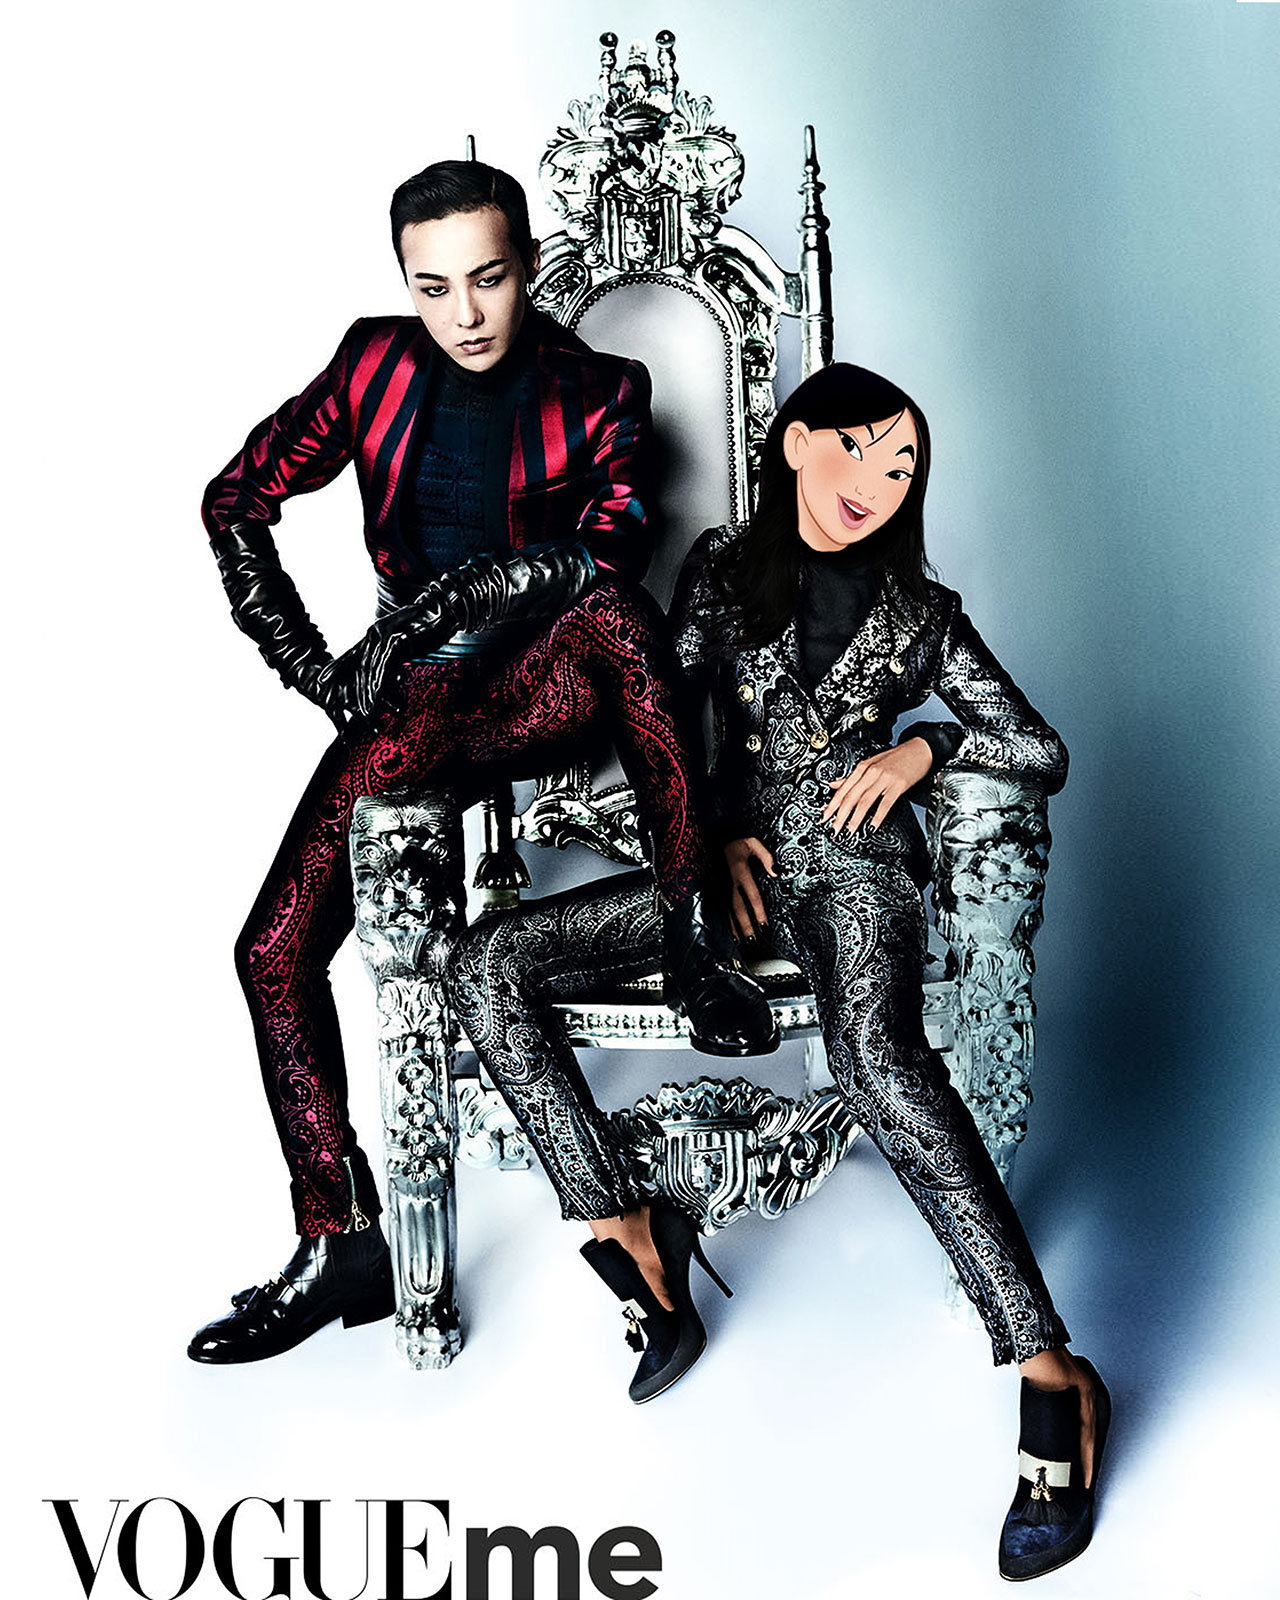 Bella Hadid as Mulan and G-Dragon in Balmain for Vogue China and Vogue Me from August 2016 issue. Photographed by Mario Testino, styled by Anna Trevelyan, photo edit by Gregory Masouras.